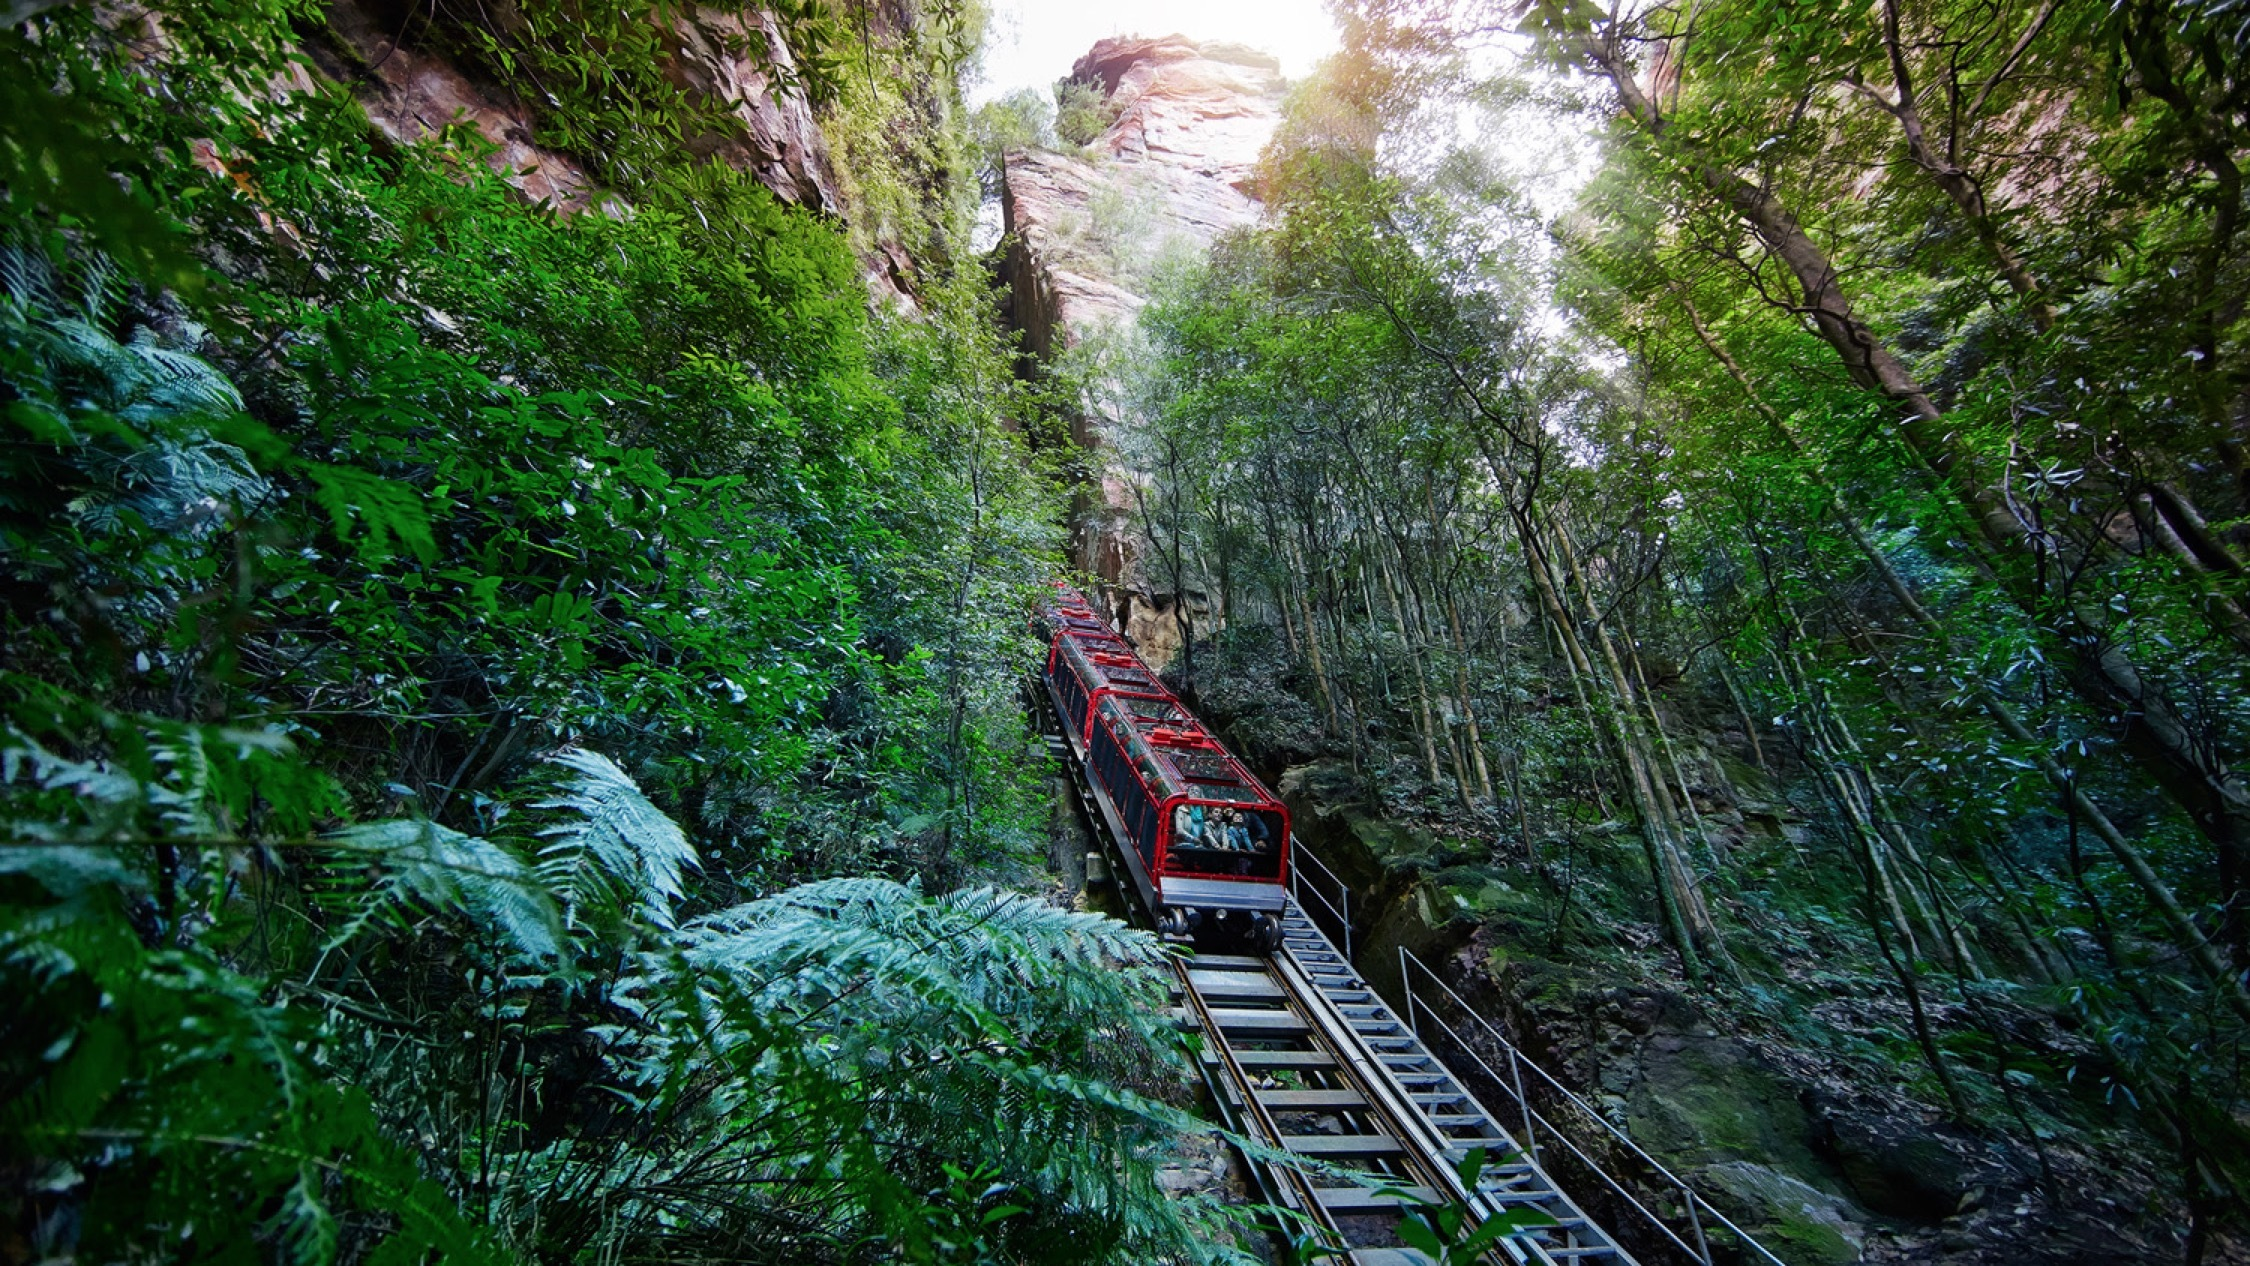 Down the hill at Scenic World